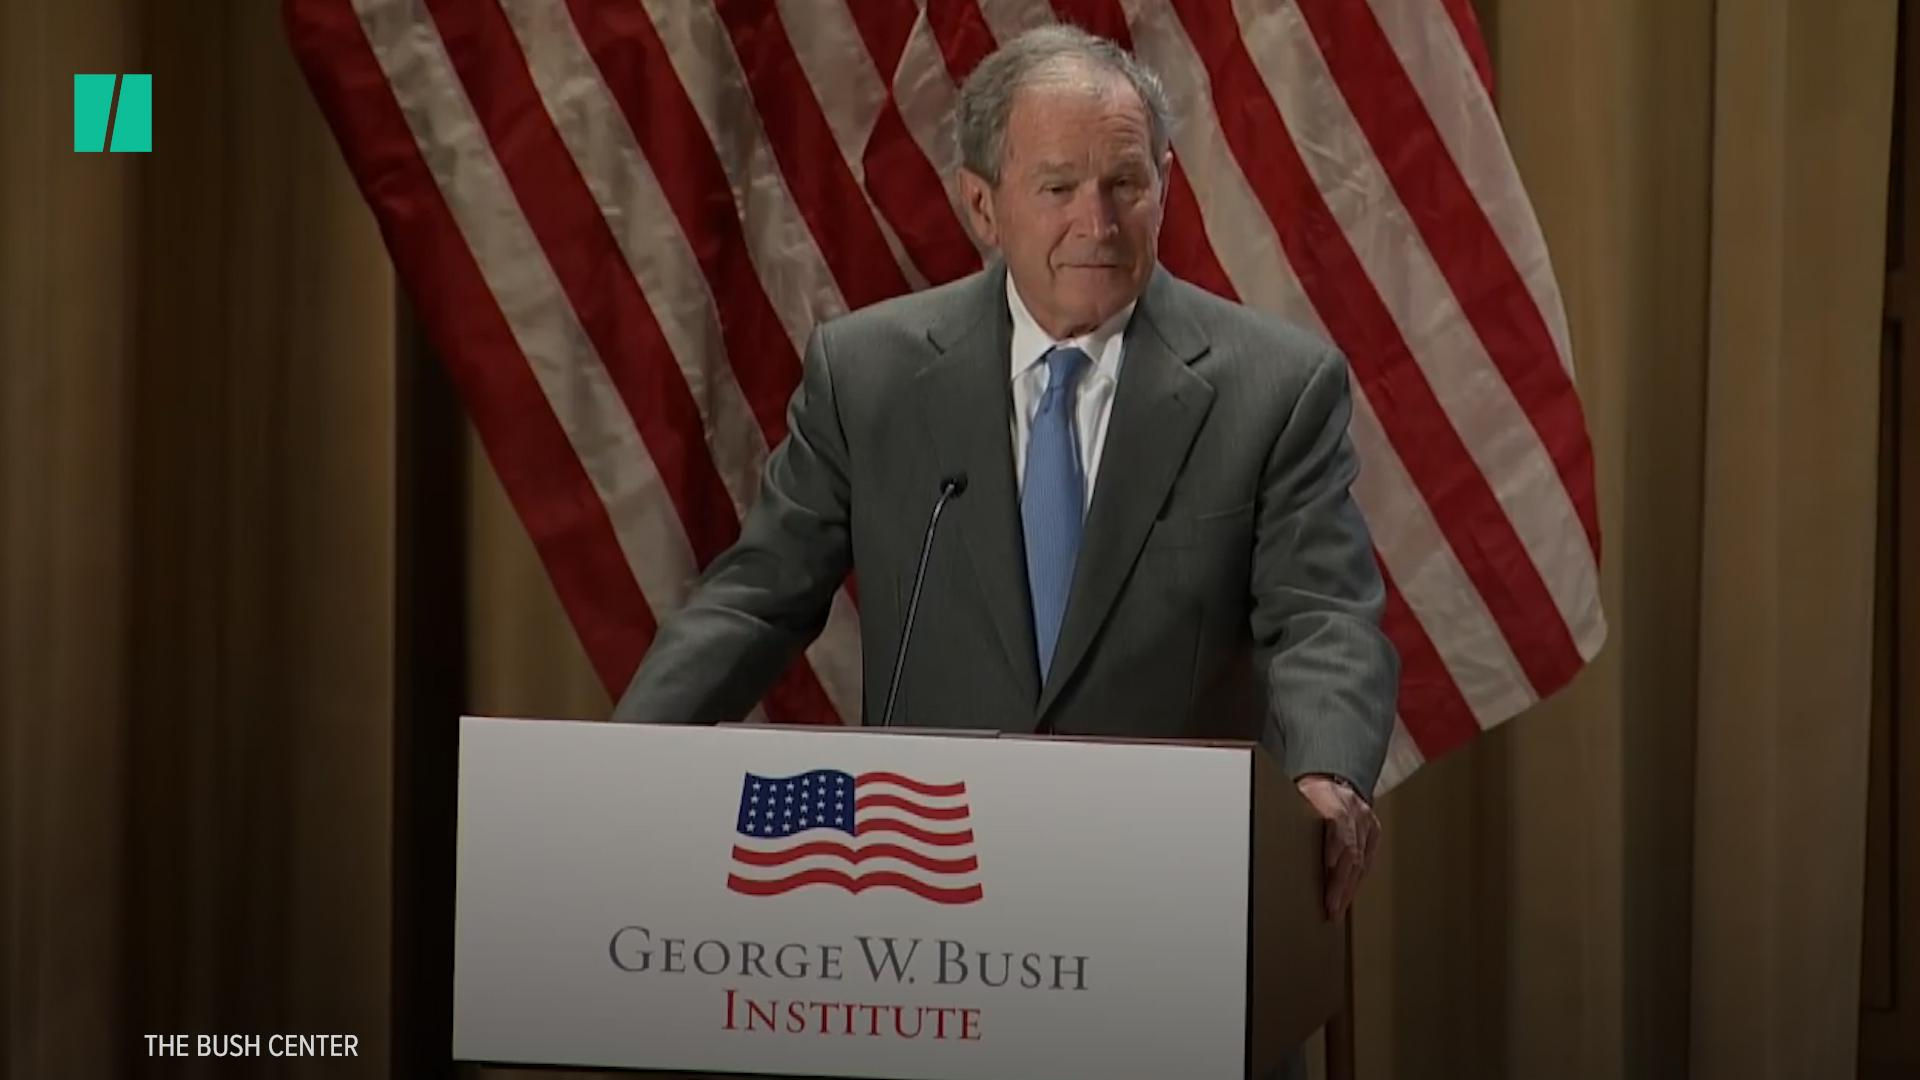 George W. Bush Draws Direct Line Between Immigration And America's Success